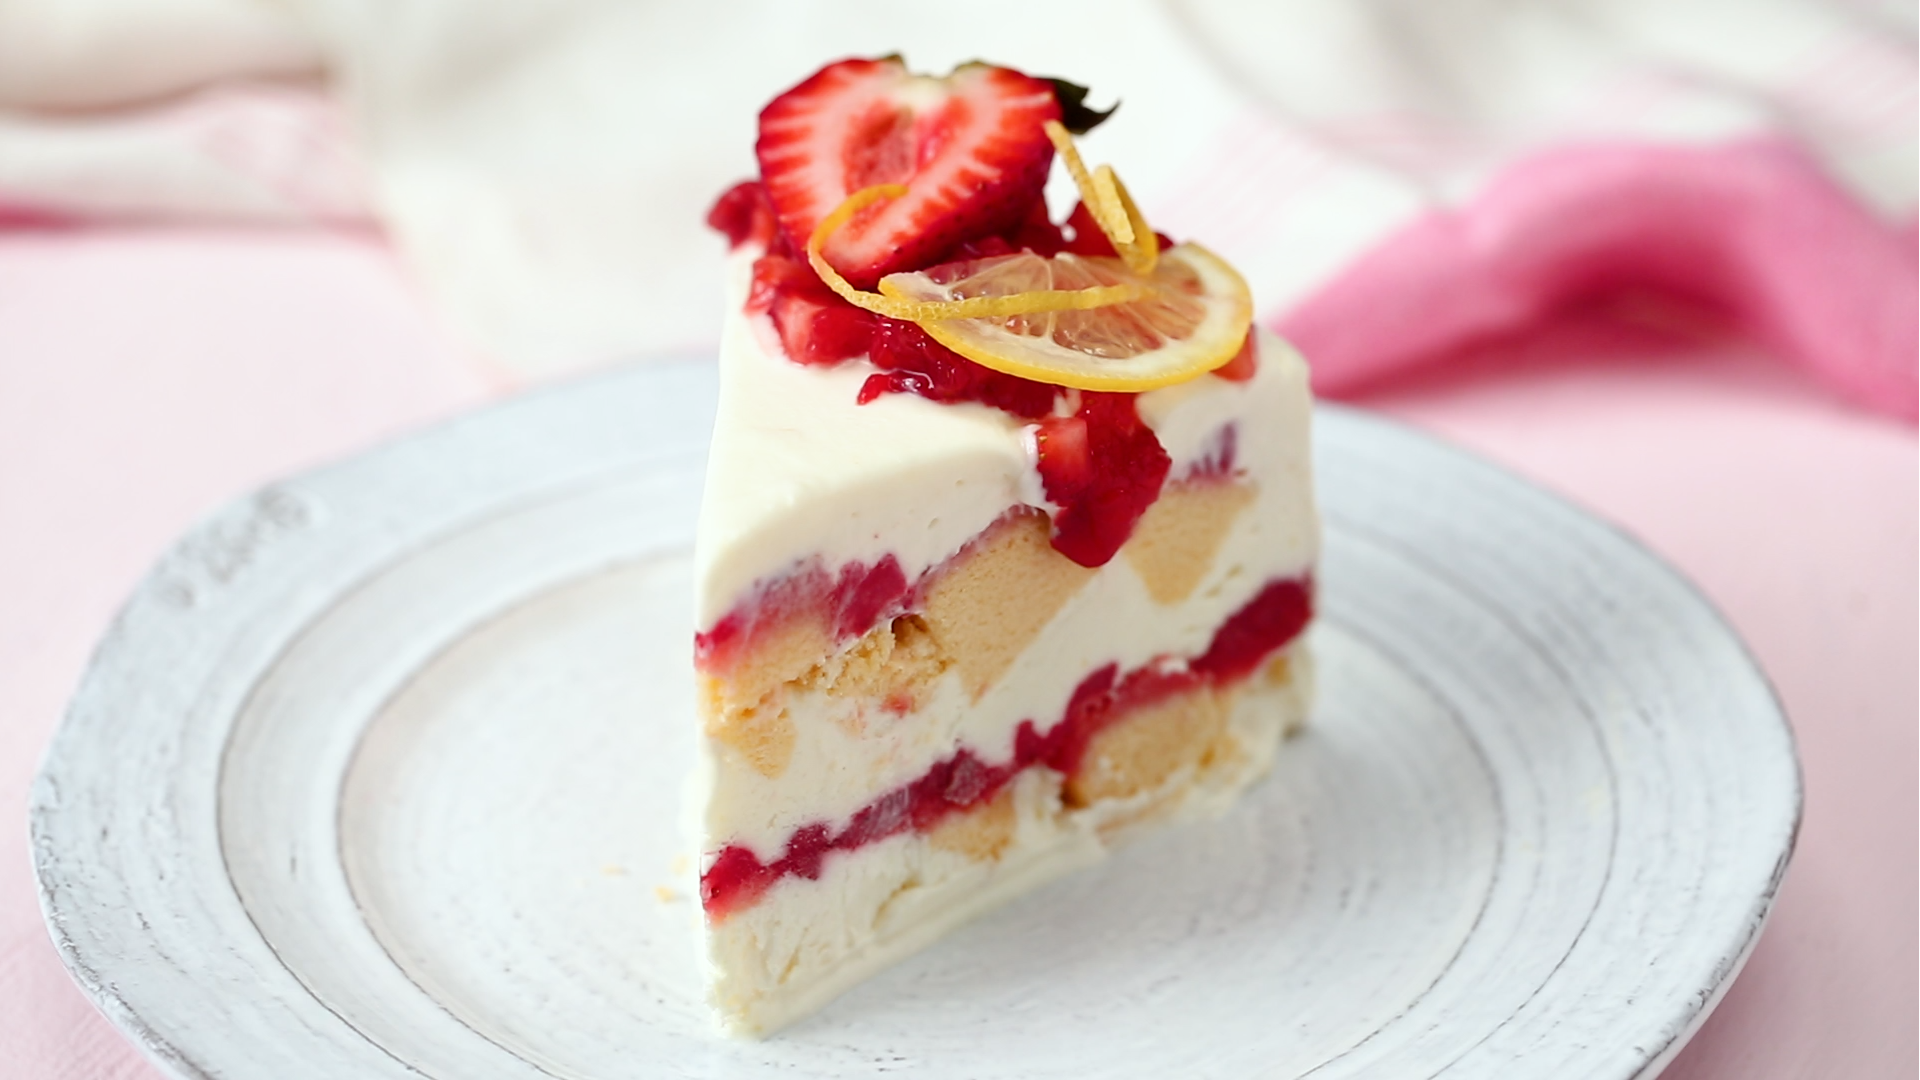 Strawberry Cake Images Download : strawberry lemonade cake recipe